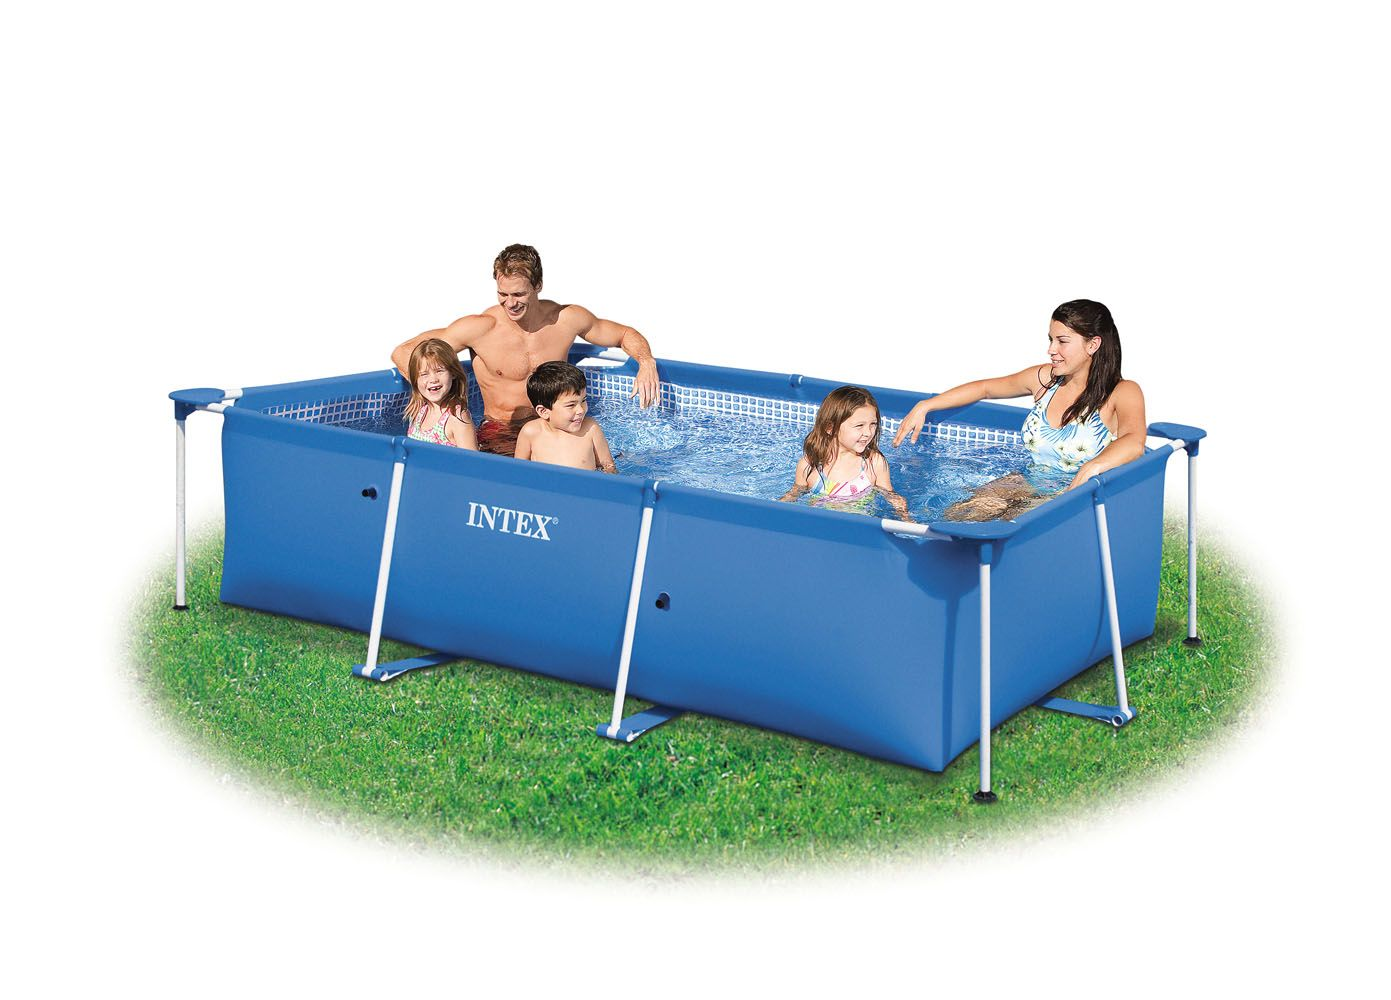 Piscine rectangulaire hors sol intex intex for Piscine gonflable auchan